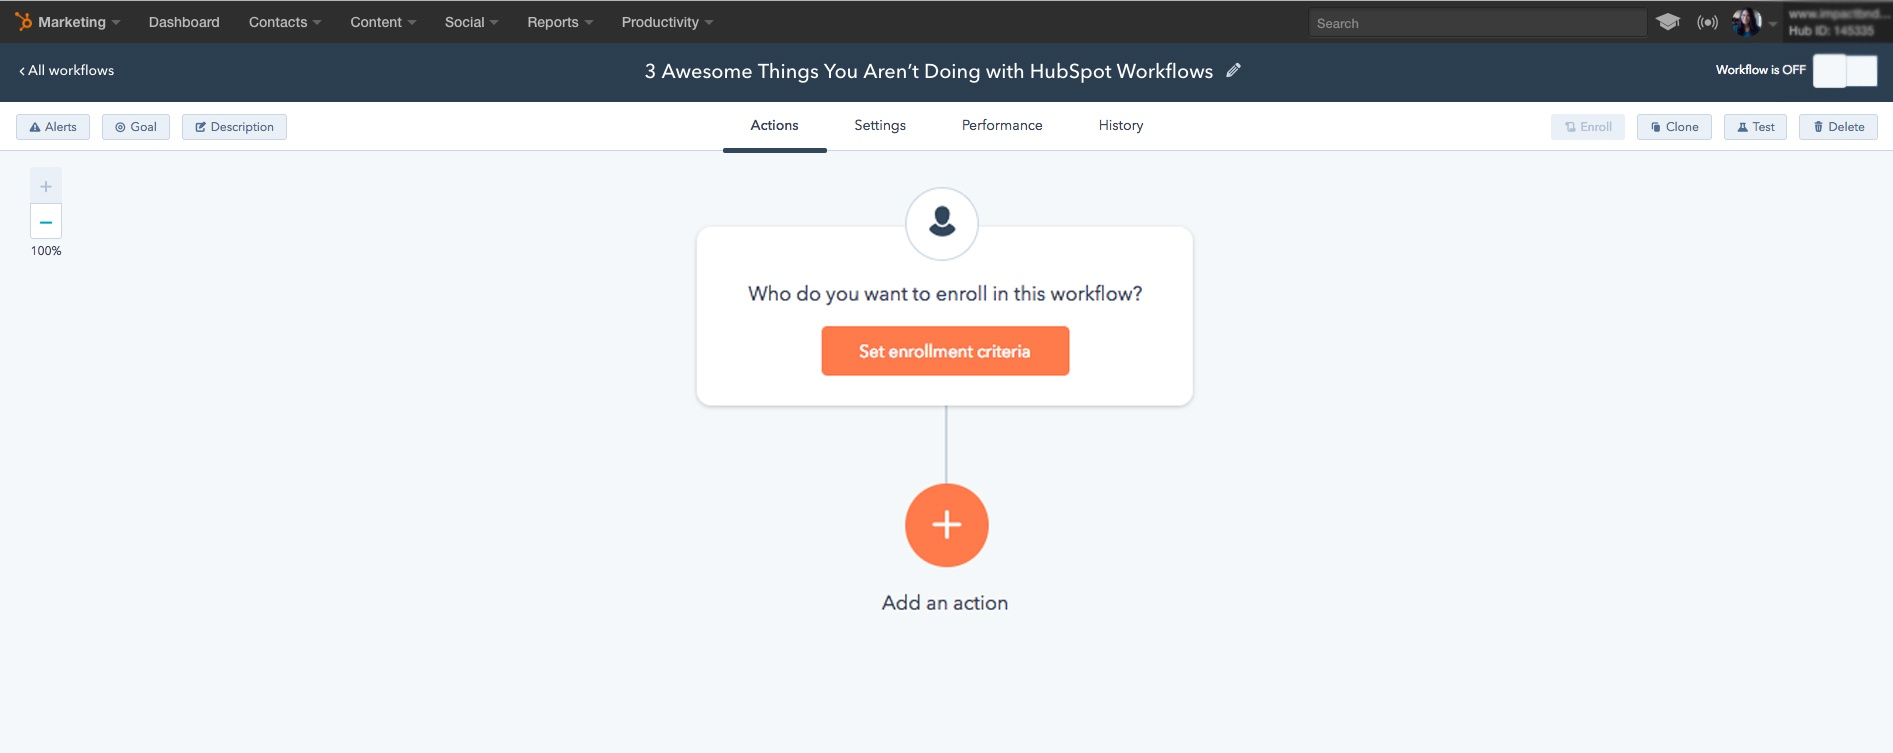 3 Awesome Things You Aren't Doing with HubSpot Workflows